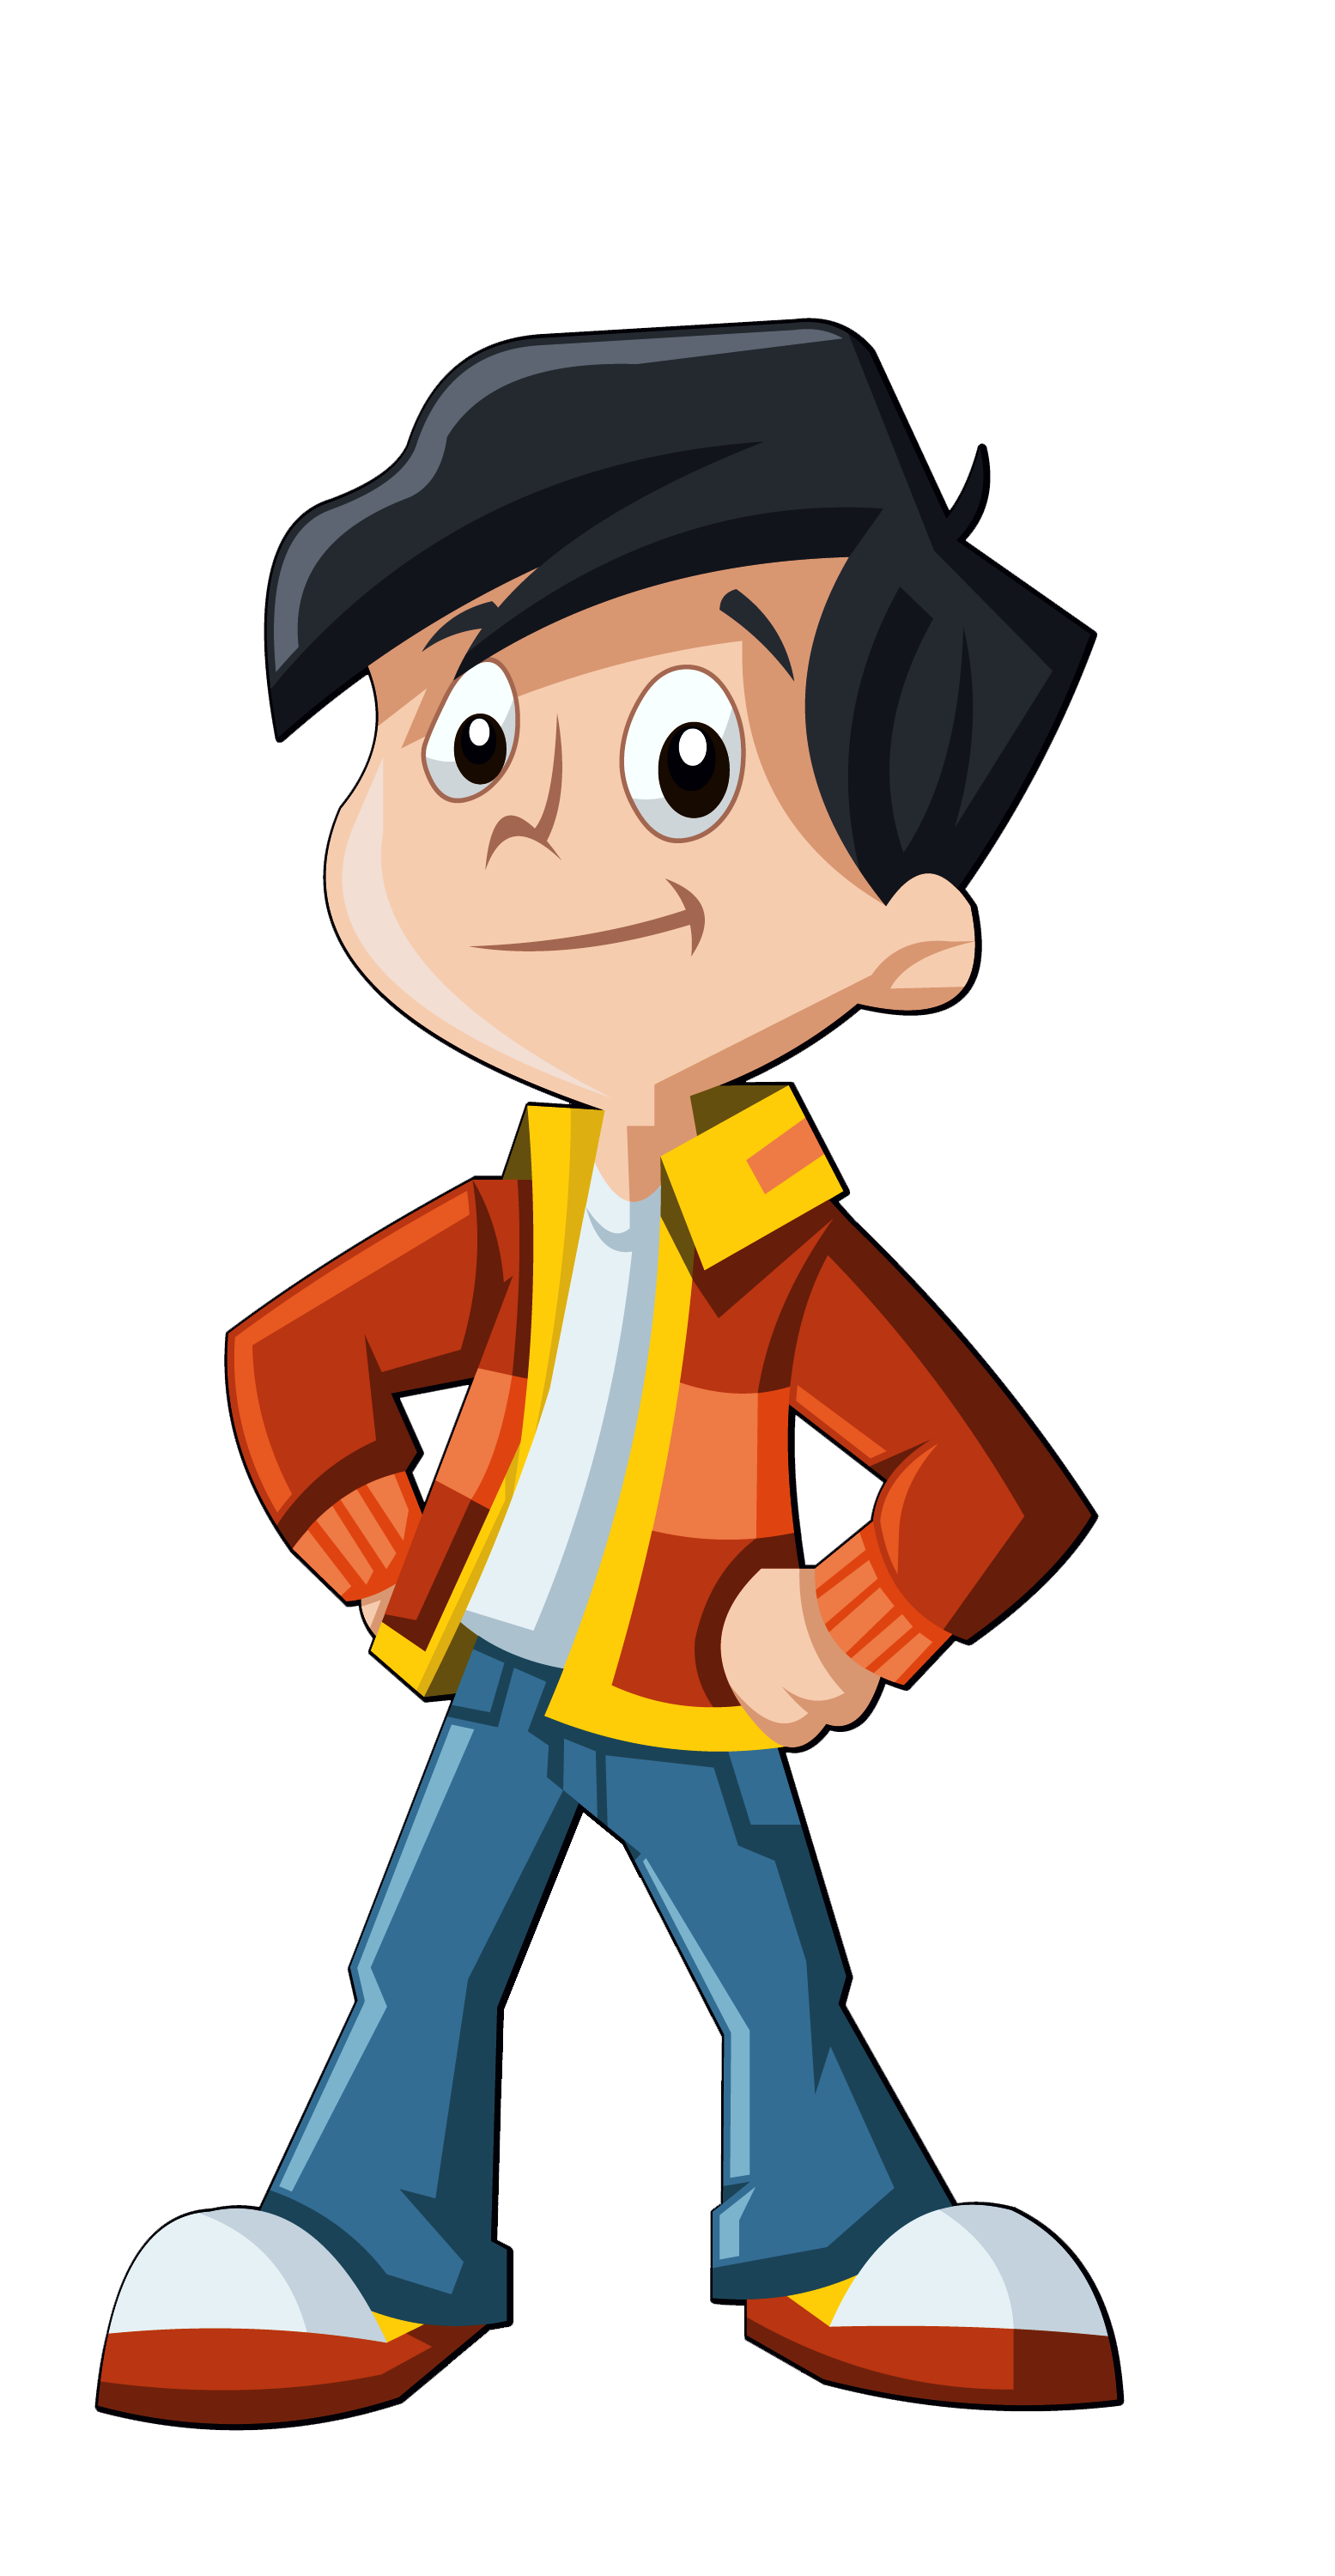 pictures of the cartoon character author - HD1555×3000